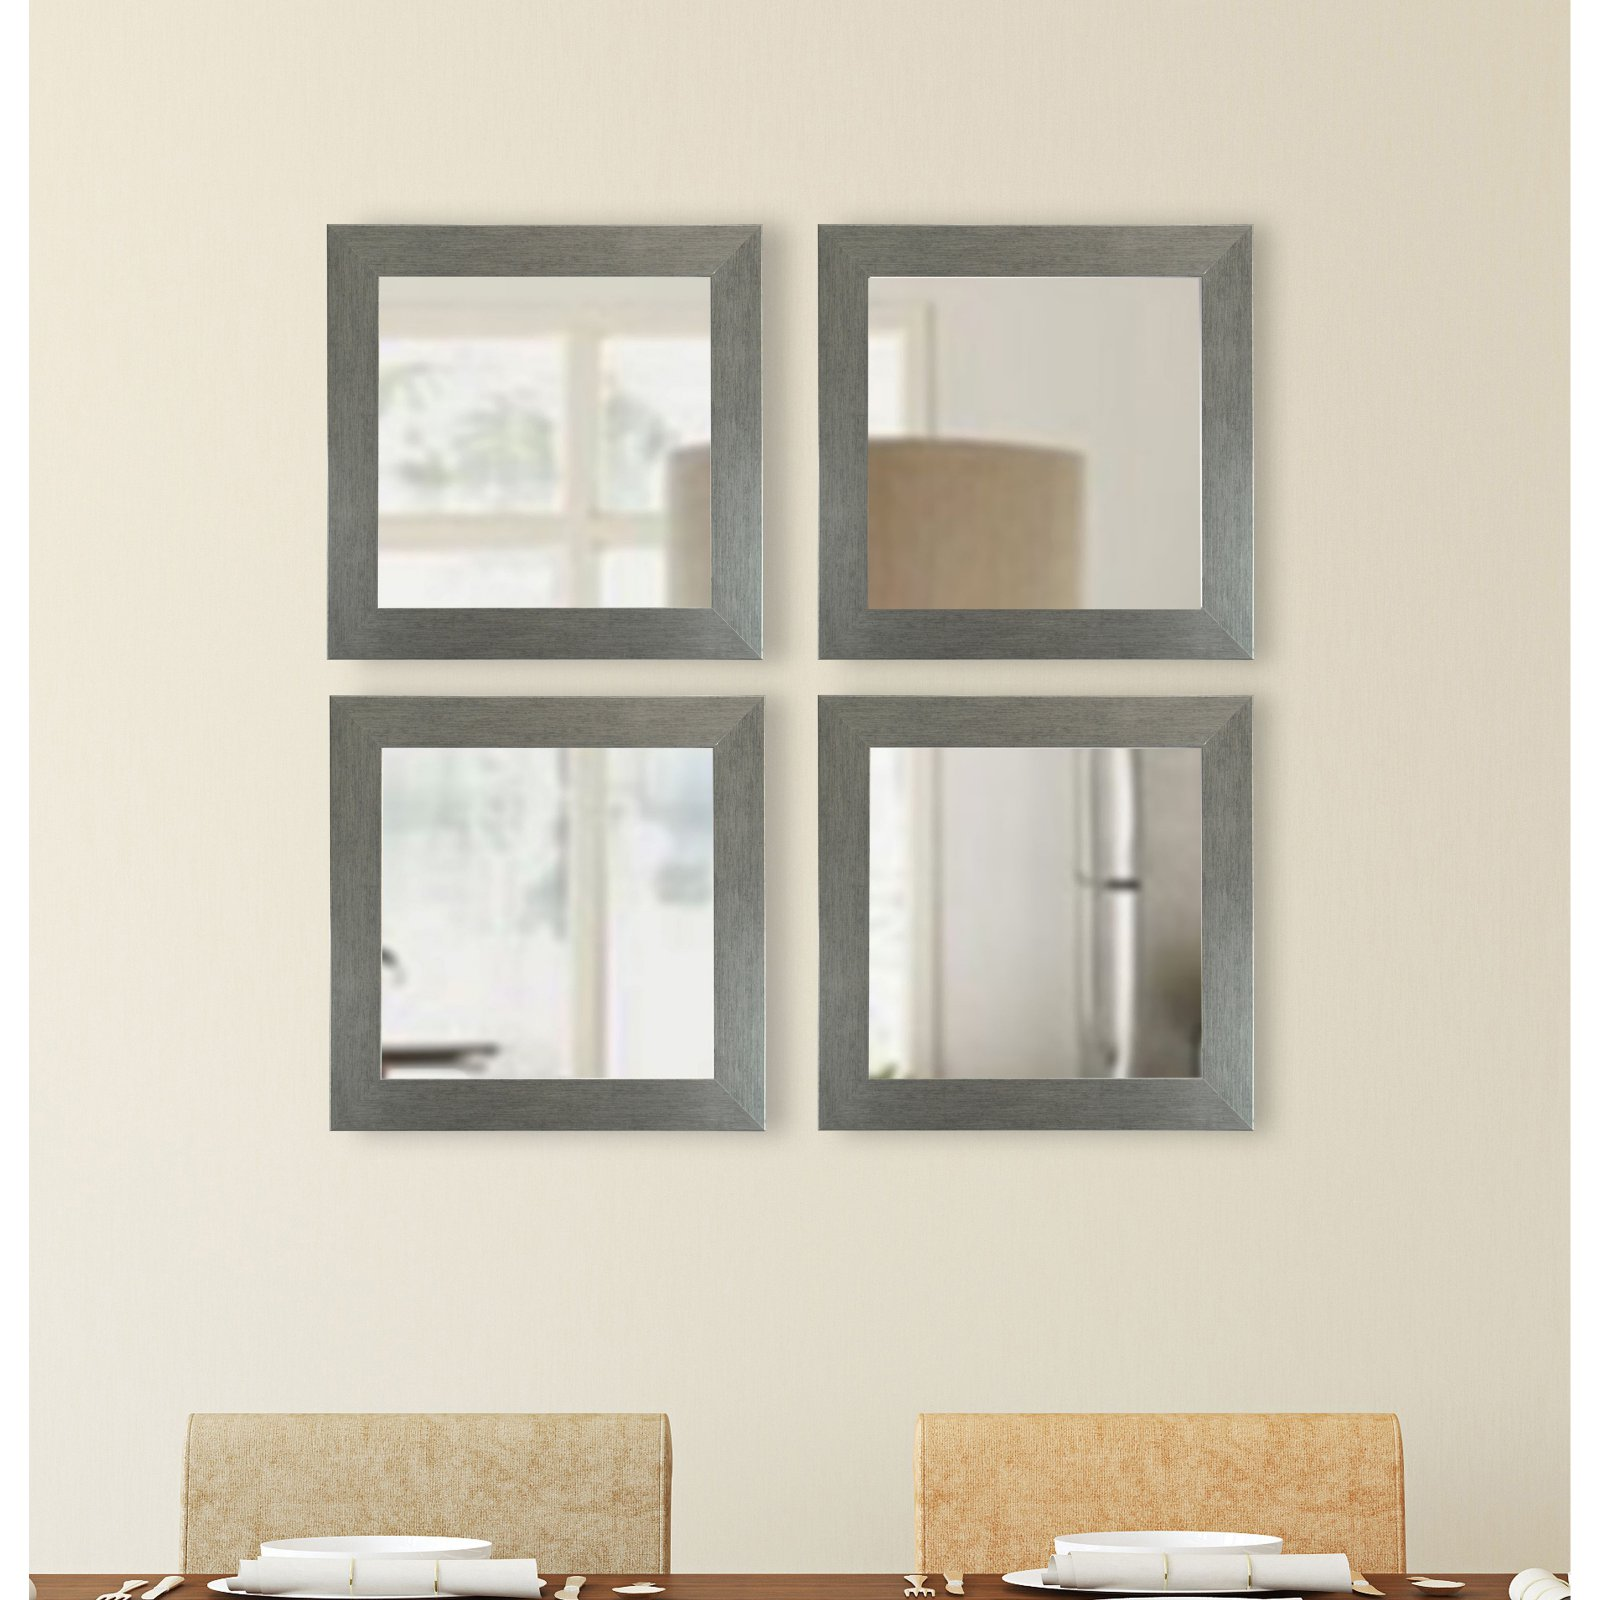 Rayne Mirrors Yukon Square Wall Mirror Set of 4 by Overstock